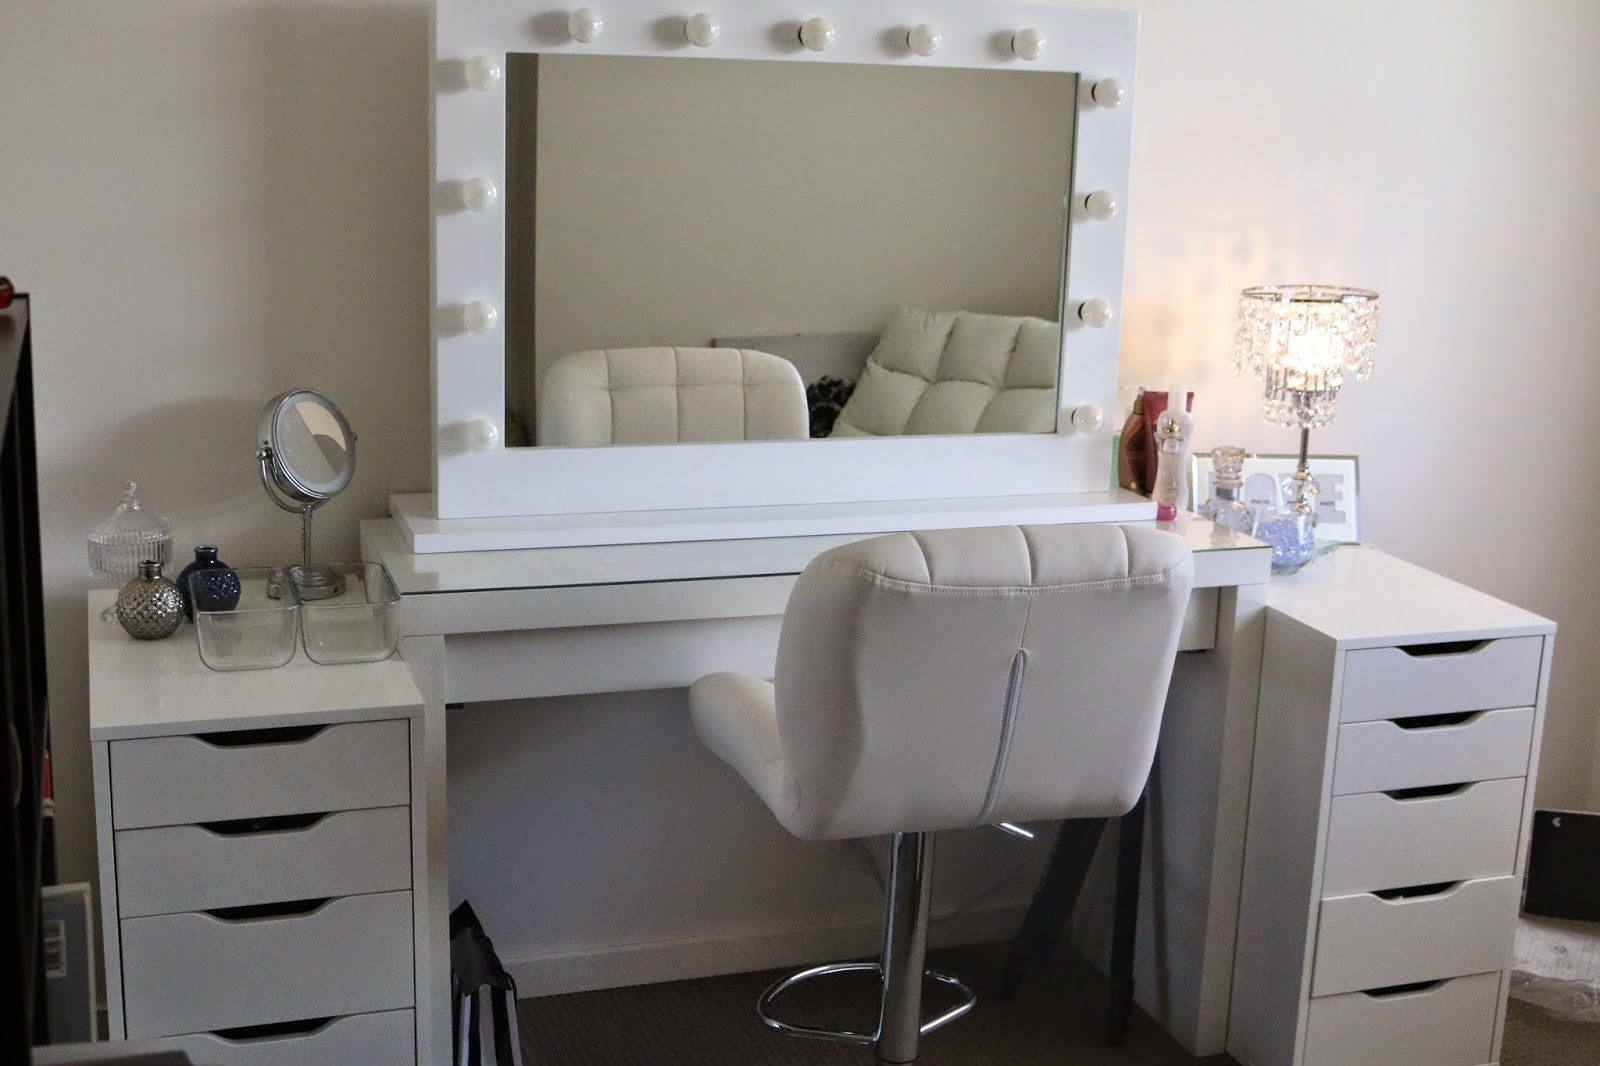 Hollywood Vanity Mirror with Lights | Vanity Table Lights Around Mirror | Hollywood Vanity Girl Mirror